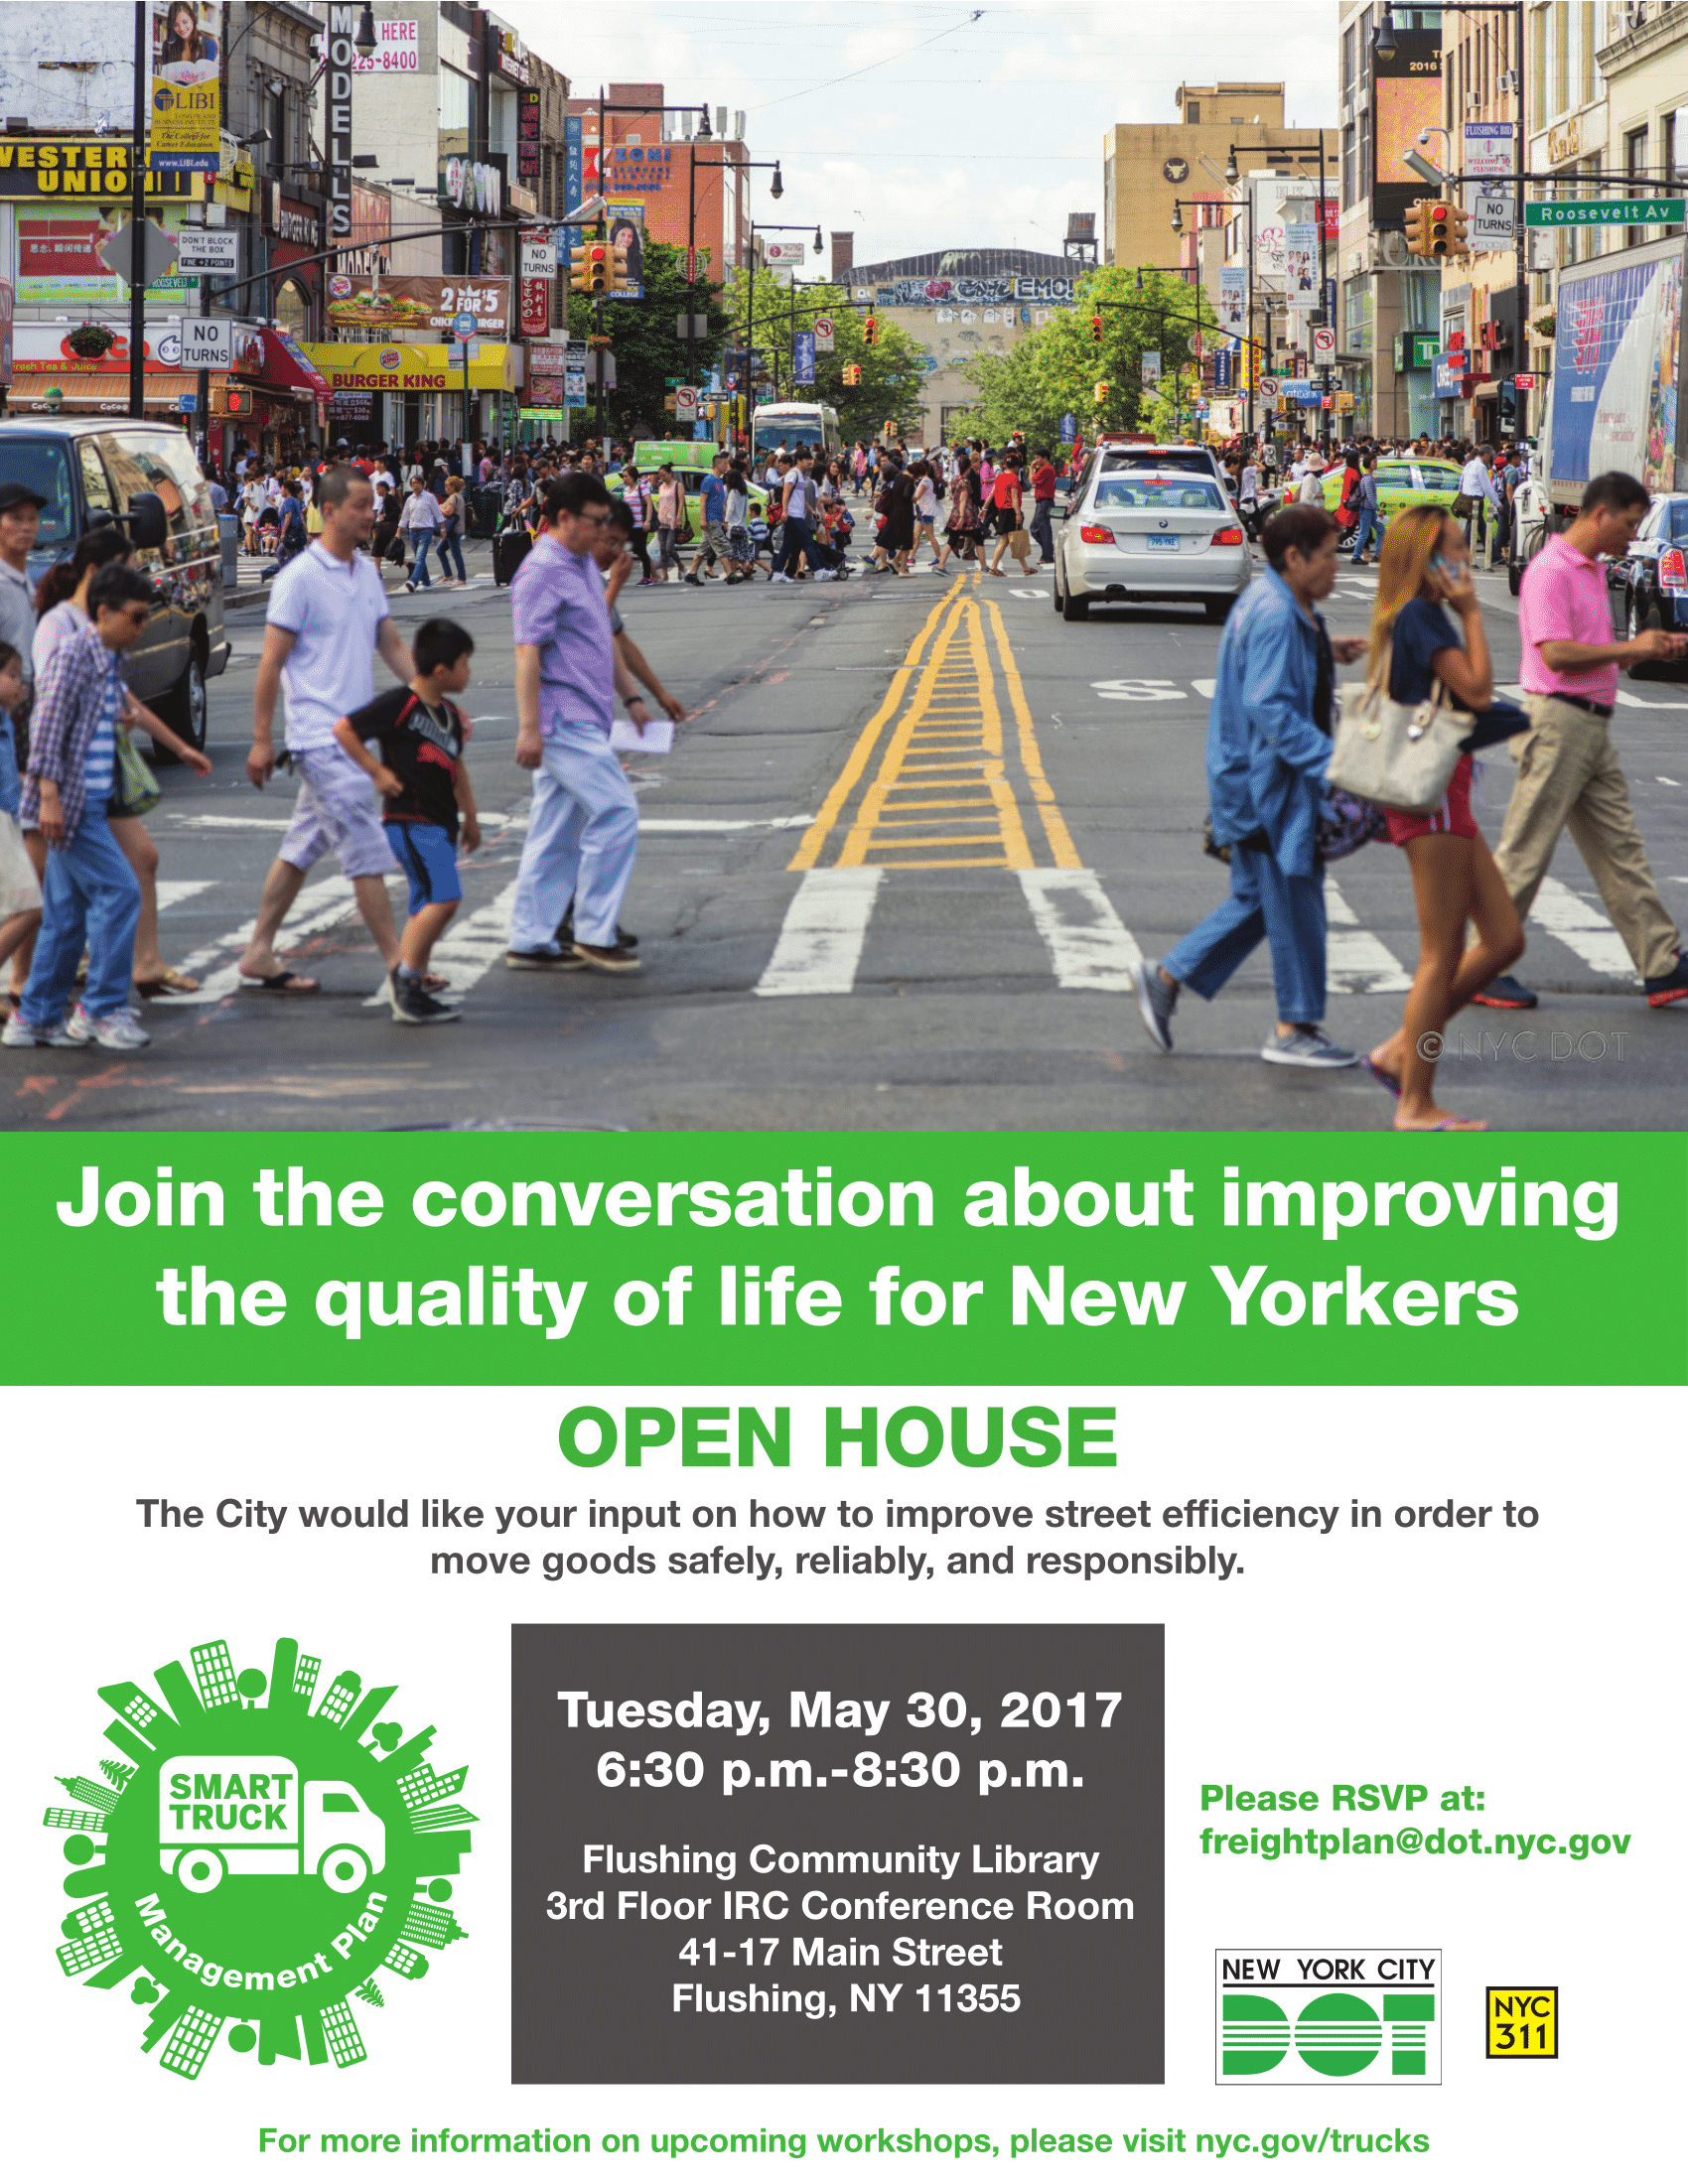 05302017_Queens_Open House_Smart Truck Management Plan_Flushing-1